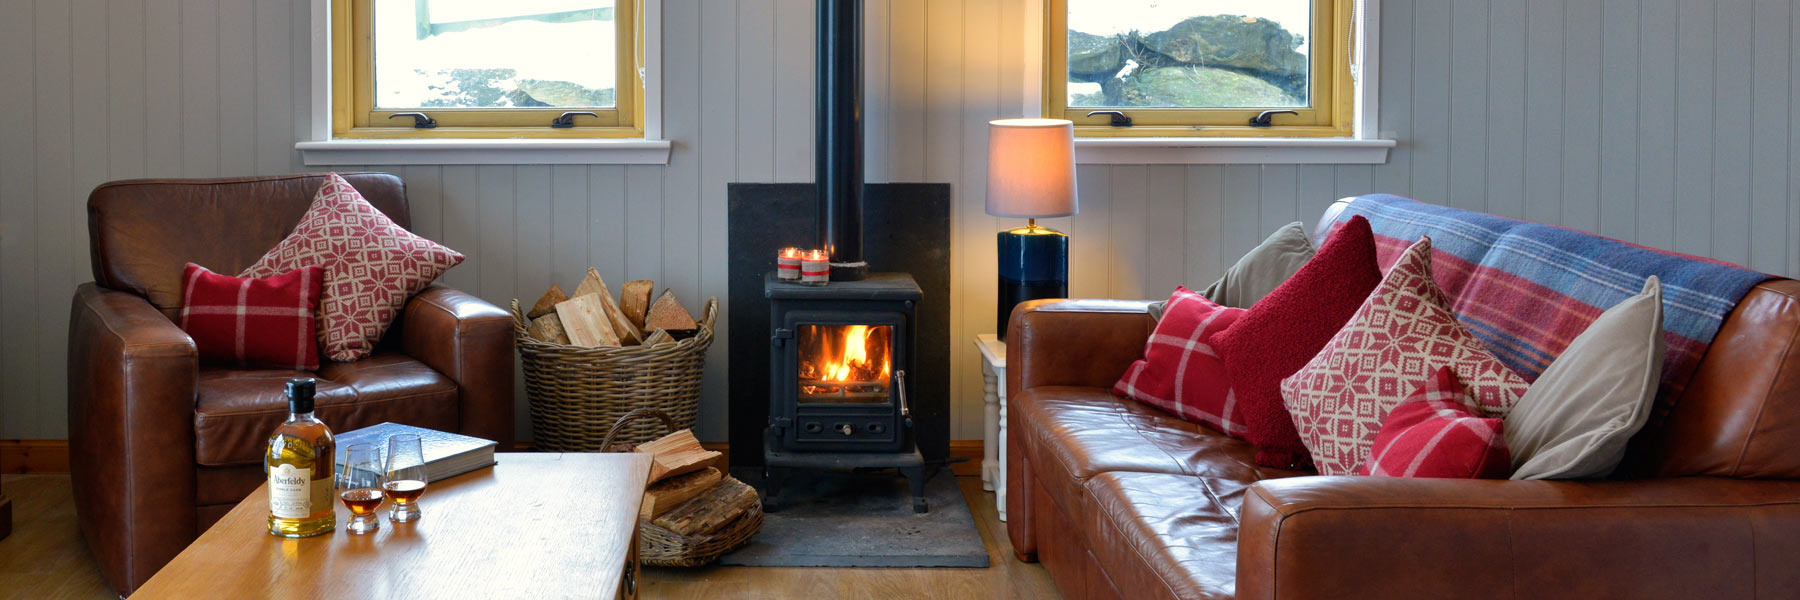 Drumcroy Lodges - Self-catering accommodation in Aberfeldy